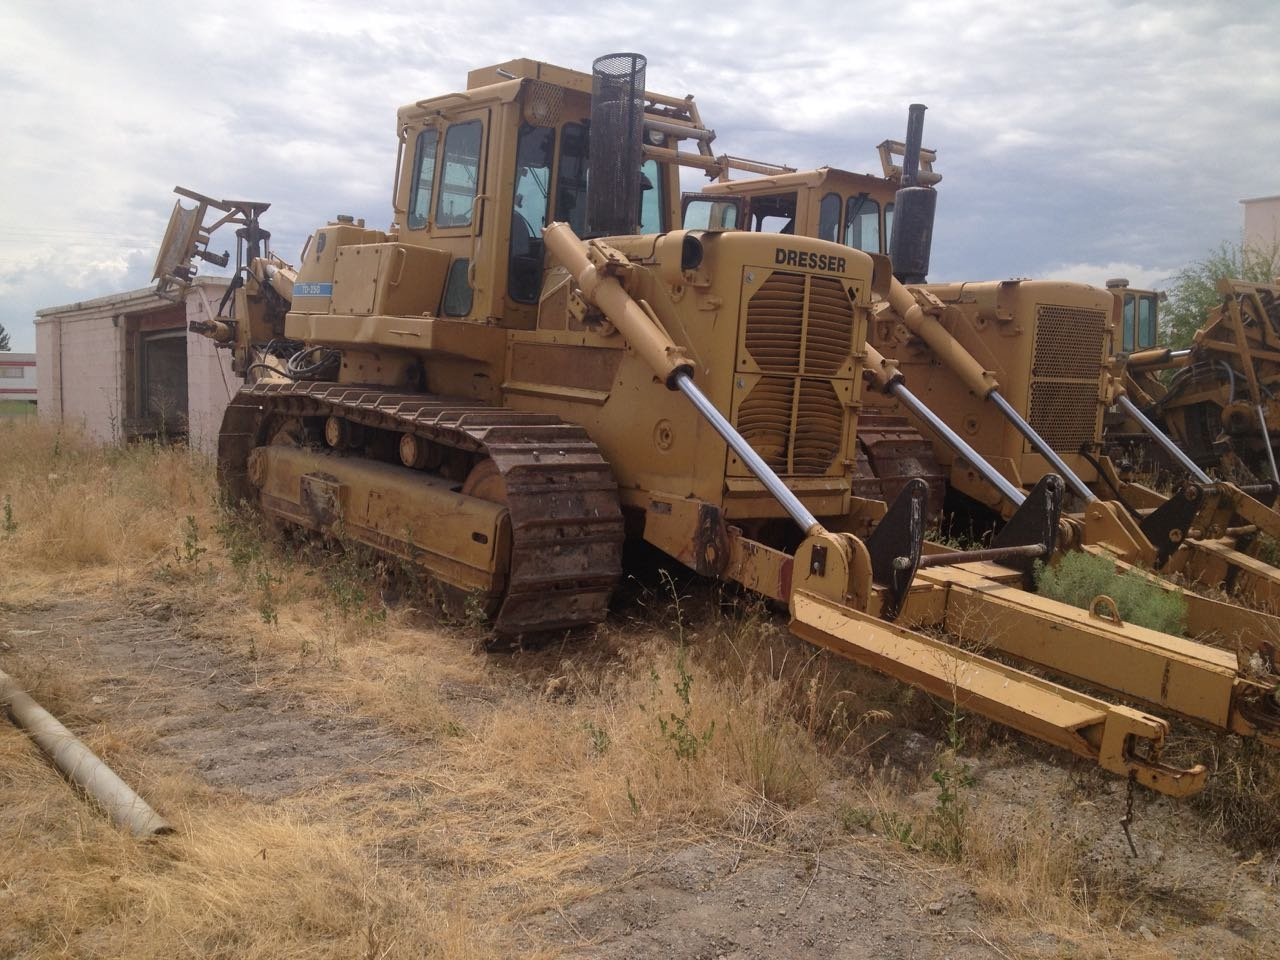 Dresser TD-25 with Bron HS-II Cable Plows, three units available from Garner Equipment